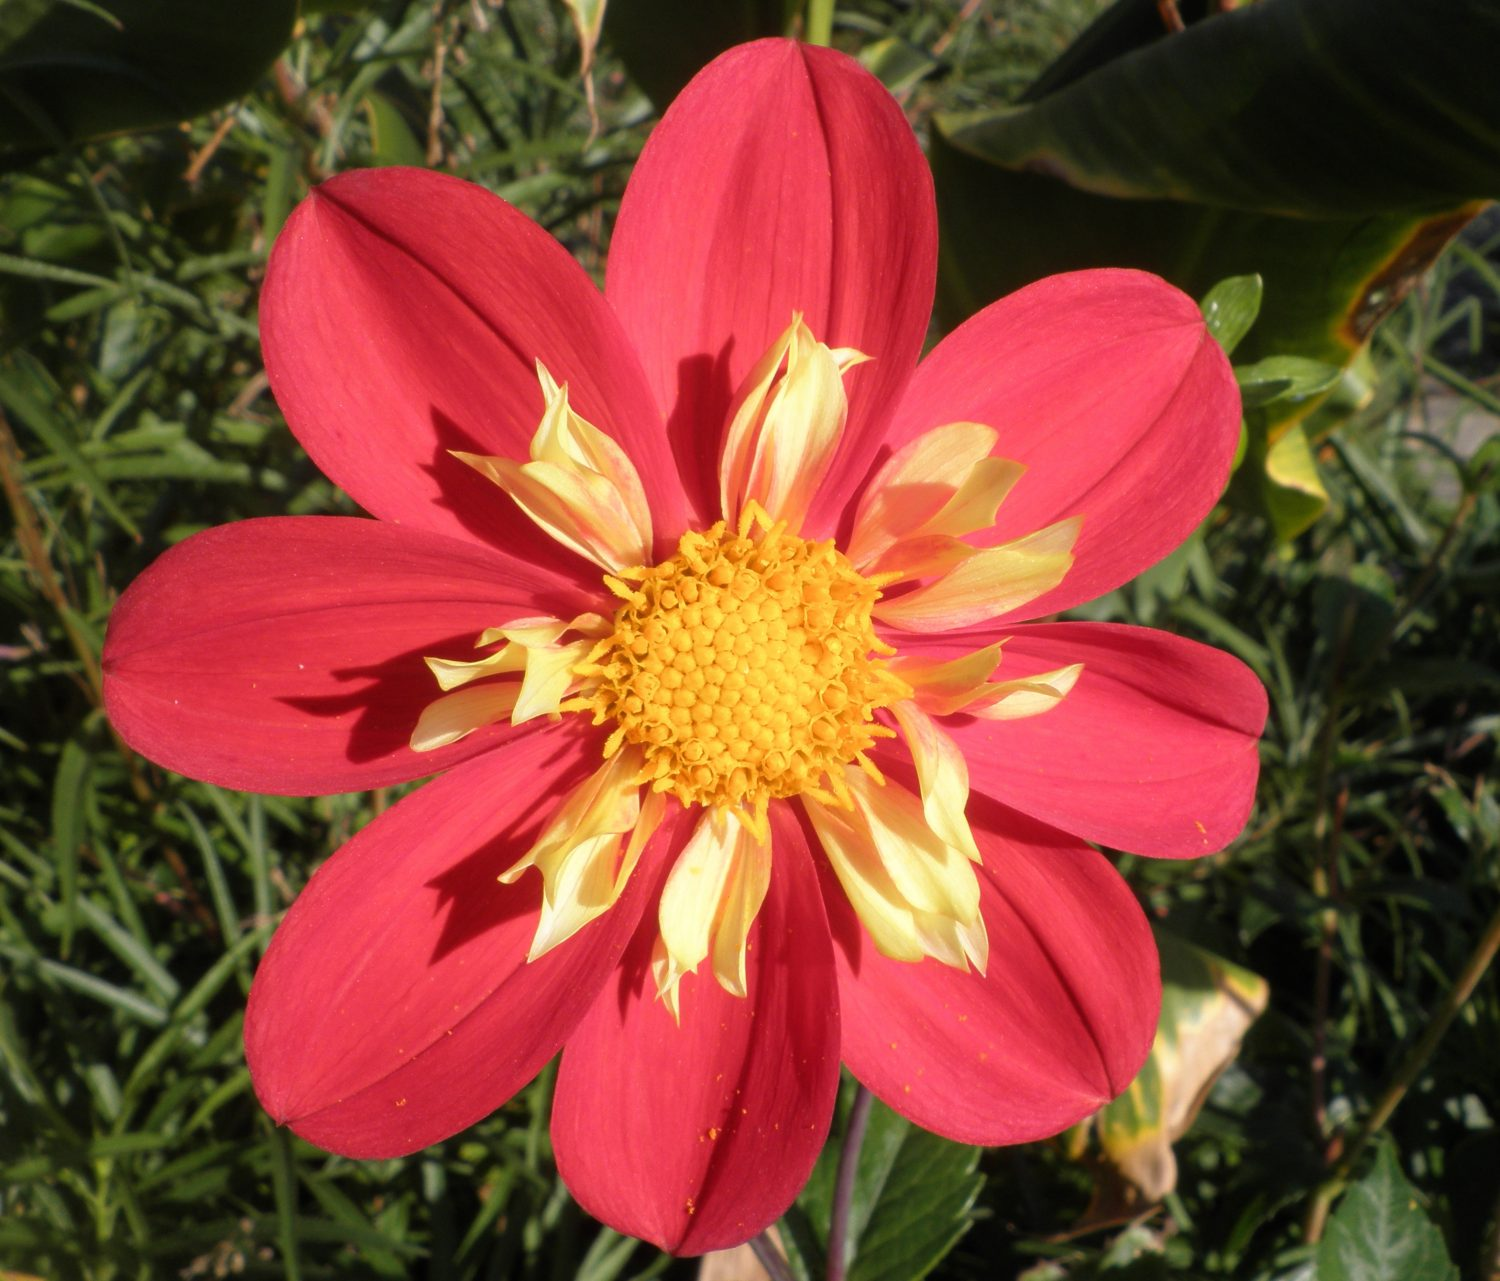 Dahlias appreciate the same rich soil as vegetables